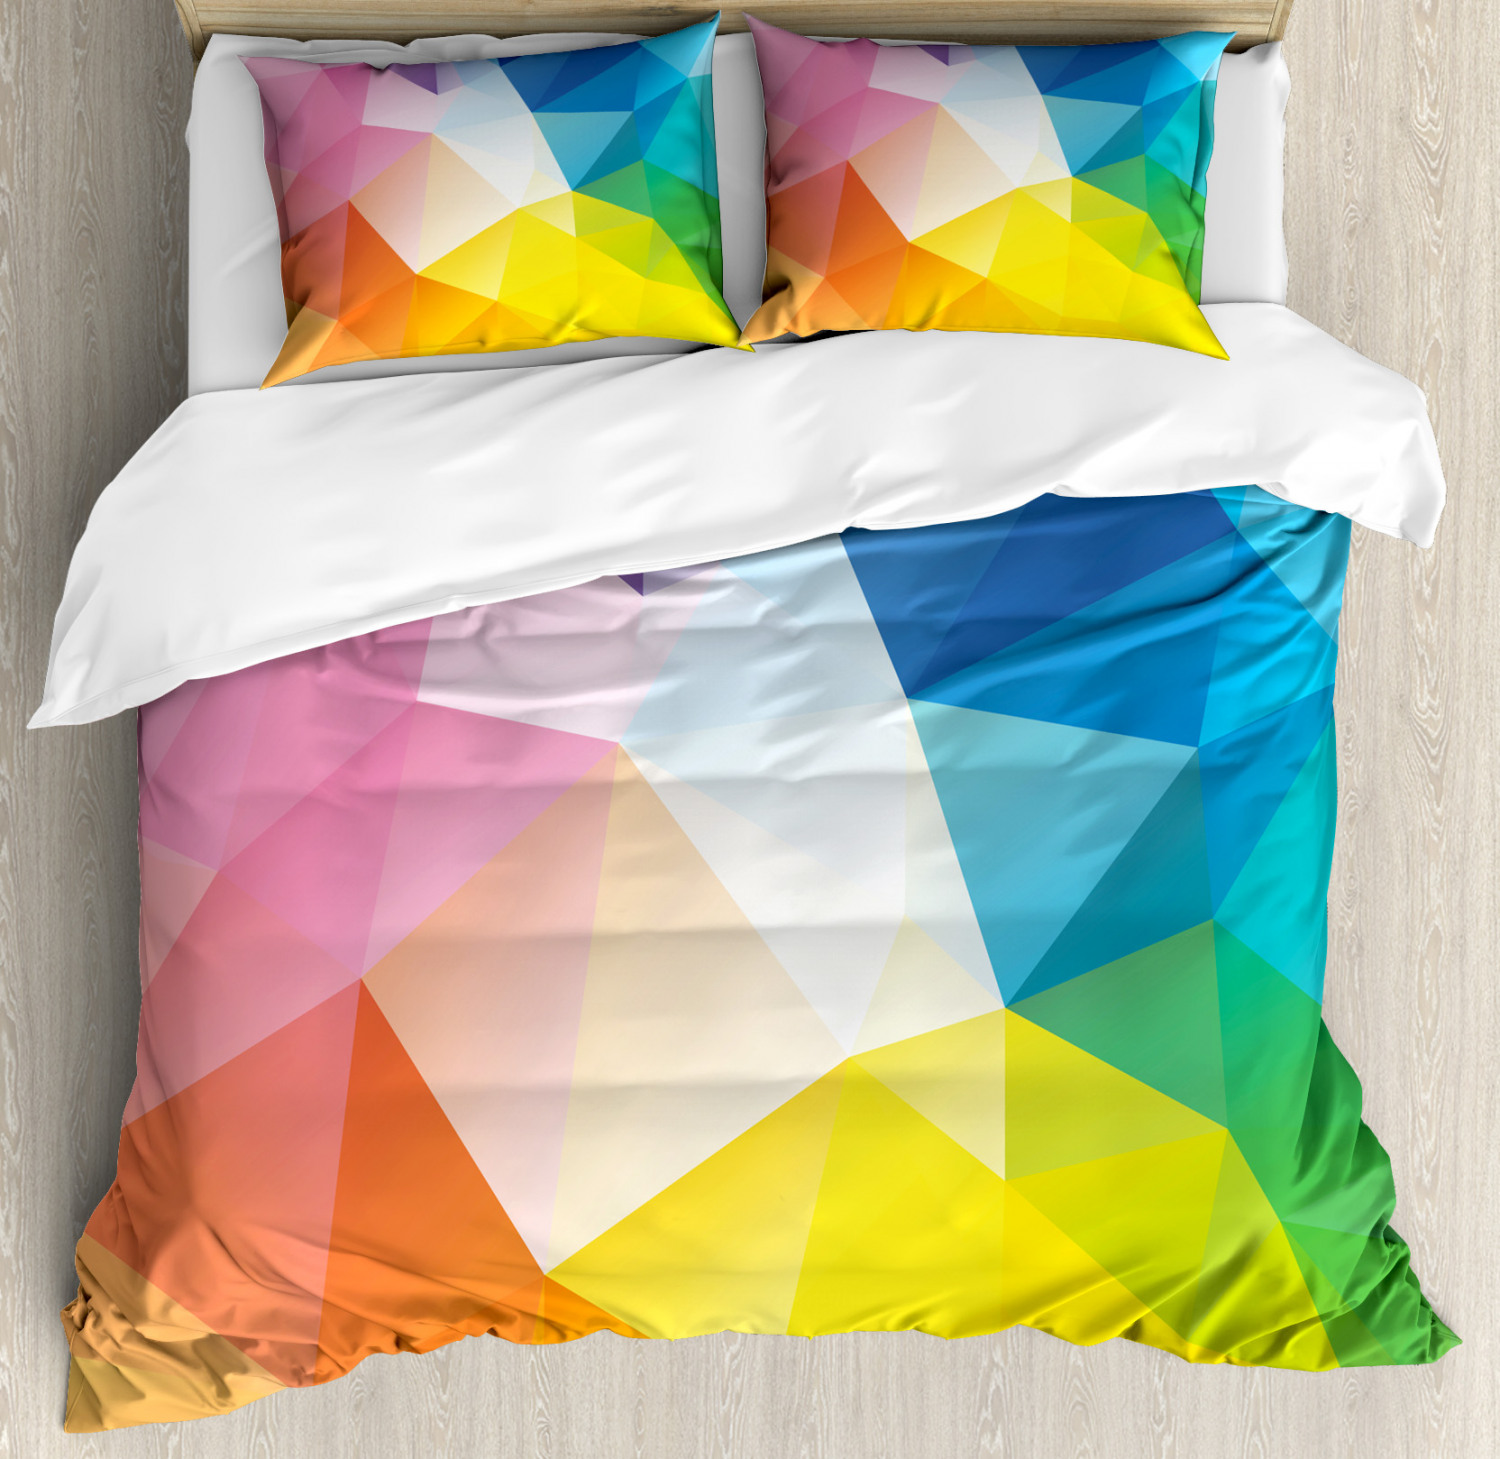 Rainbow Duvet Cover Set with Pillow Shams Fractal colord Lines Print